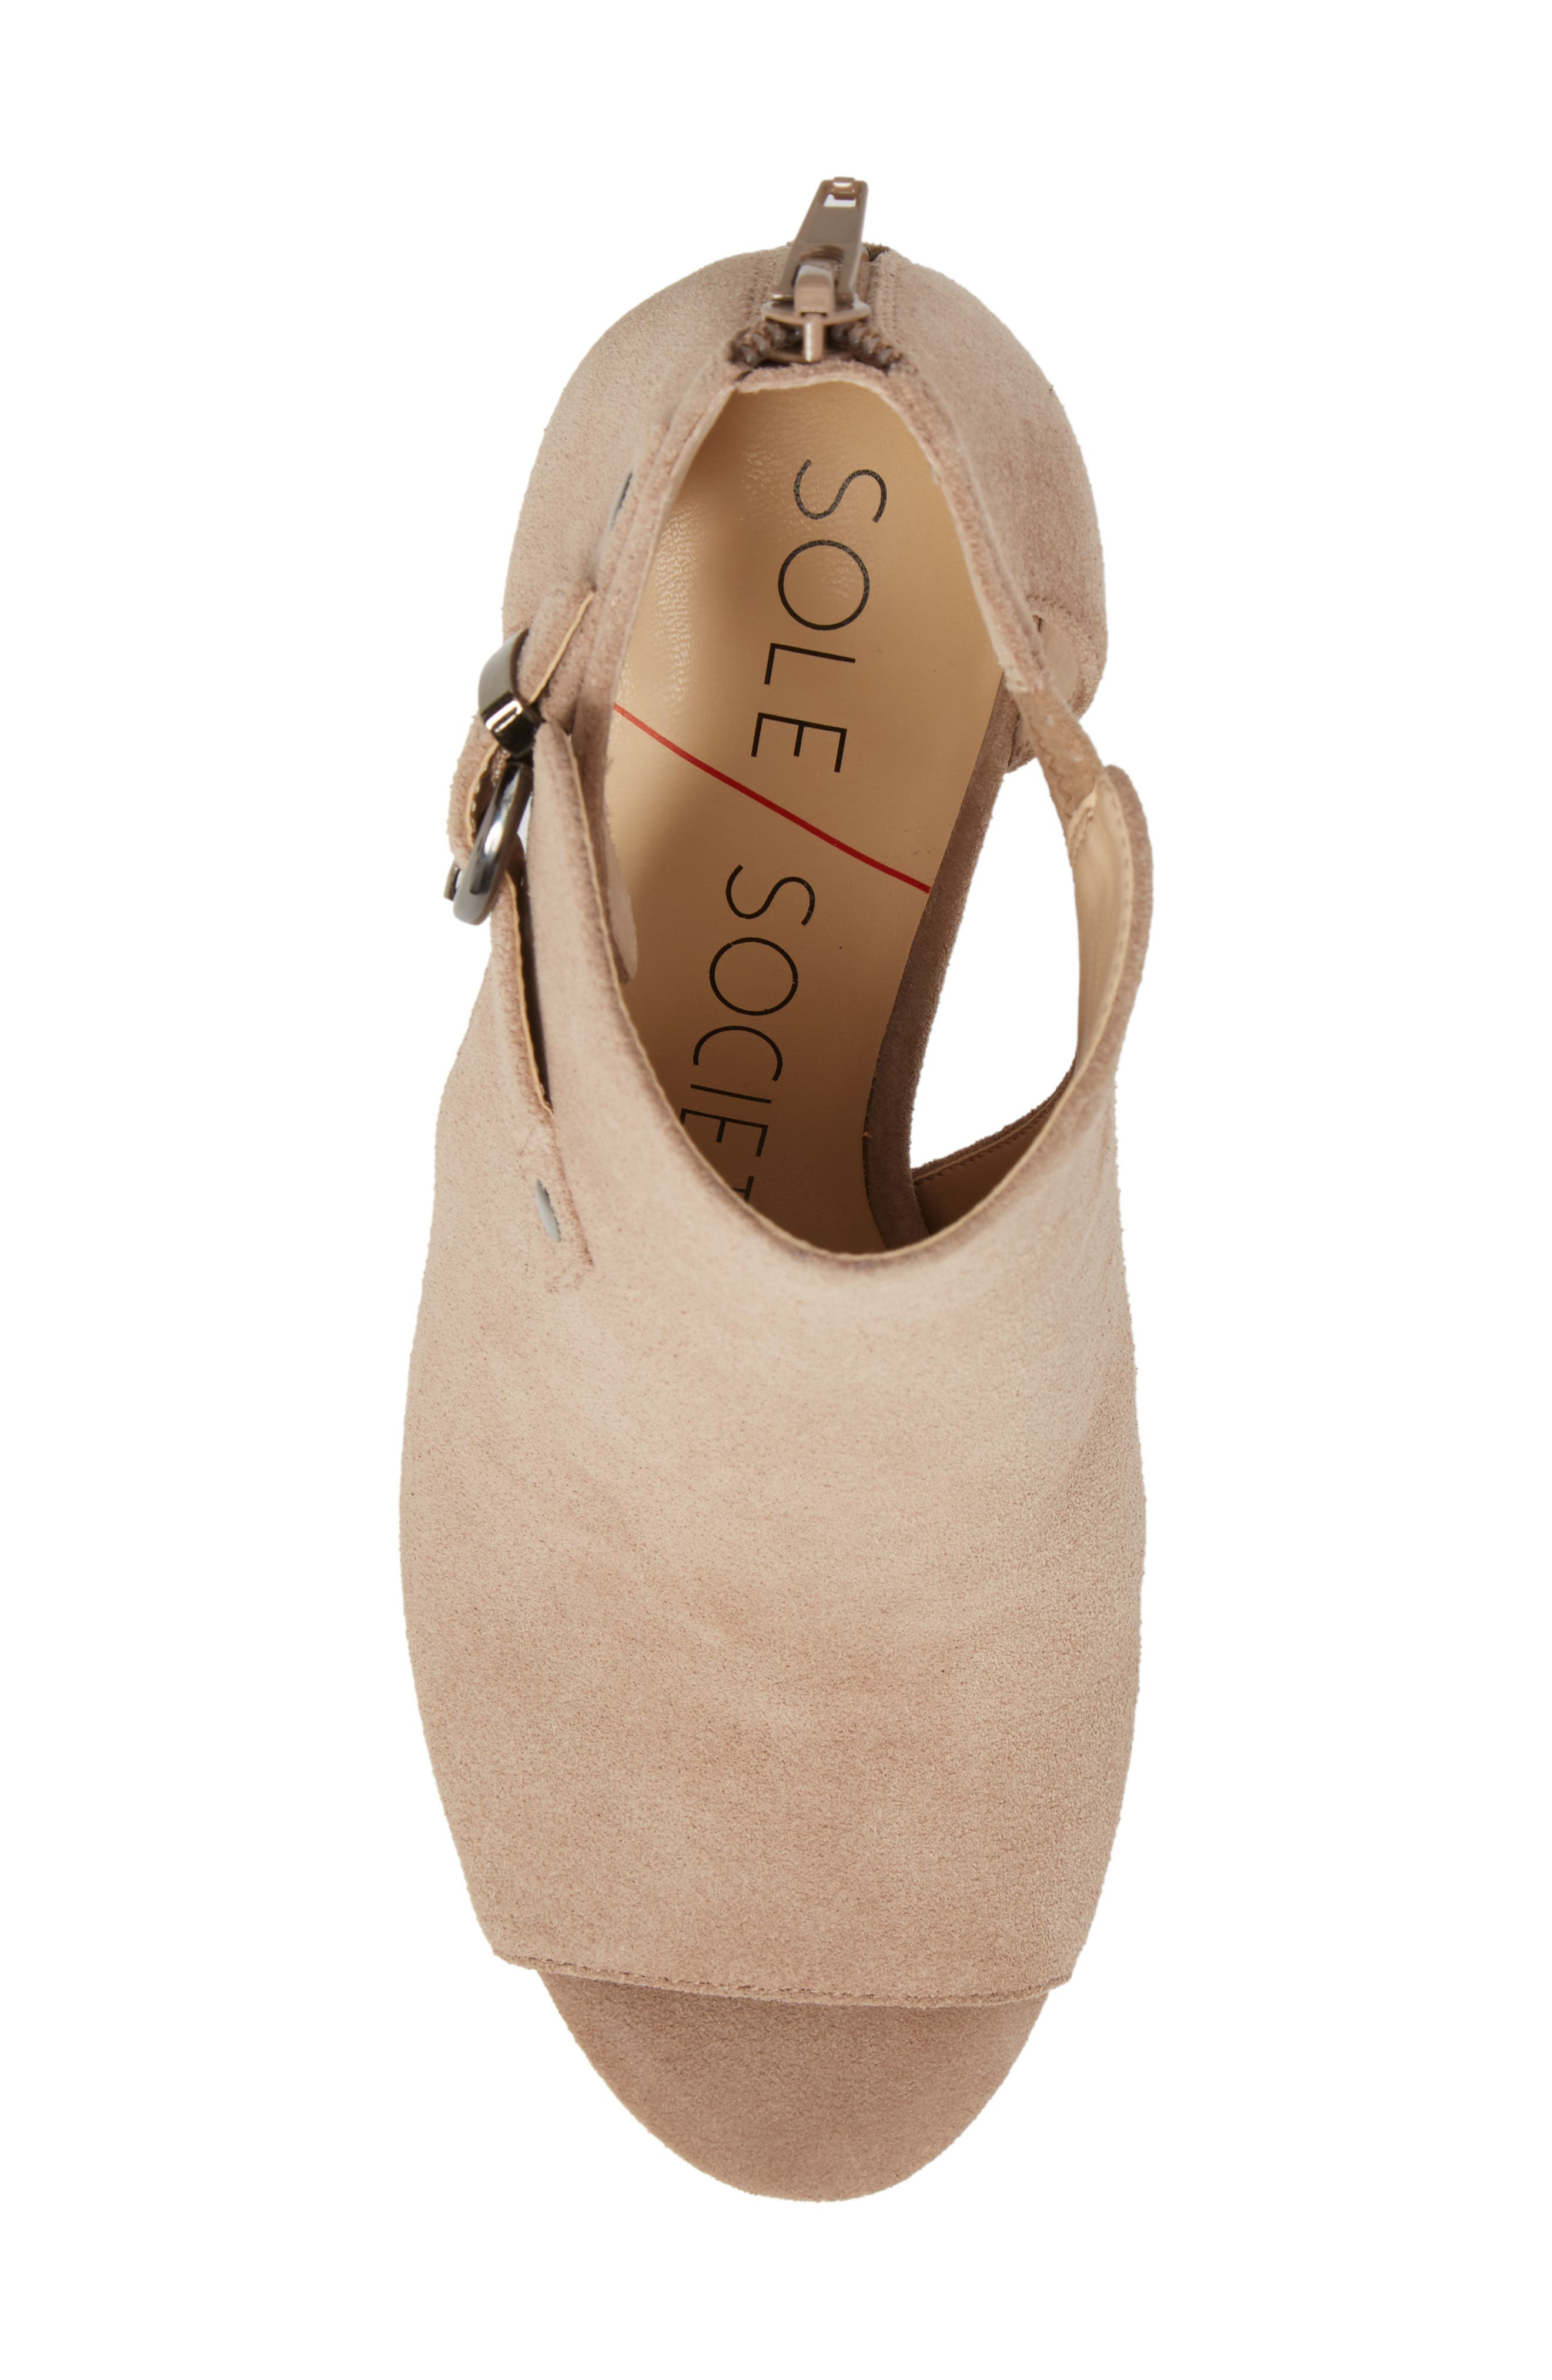 Sally Column Heel Sandal,                             Alternate thumbnail 5, color,                             Warm Taupe Cow Suede